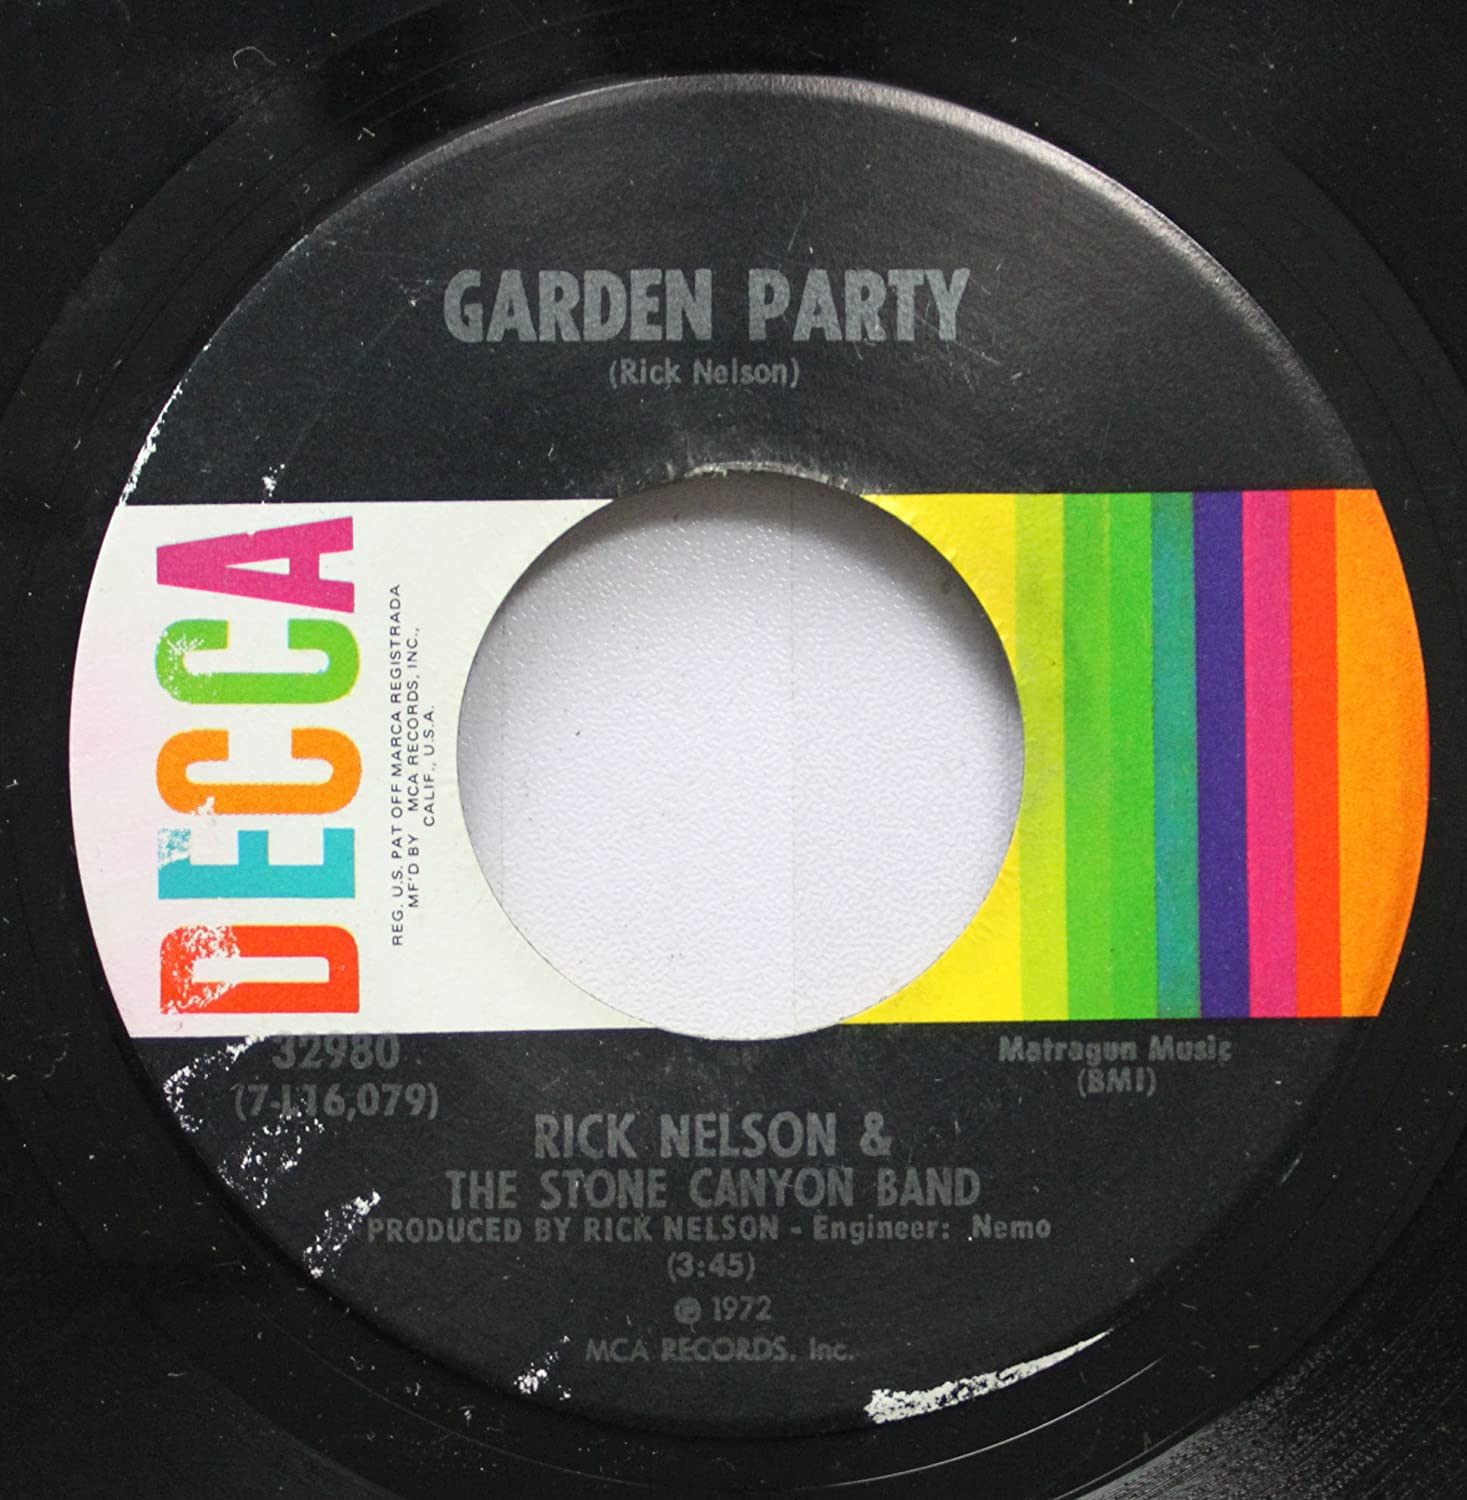 Rick Nelson & The Stone Canyon Band 45 RPM Garden Party / So Long Mama